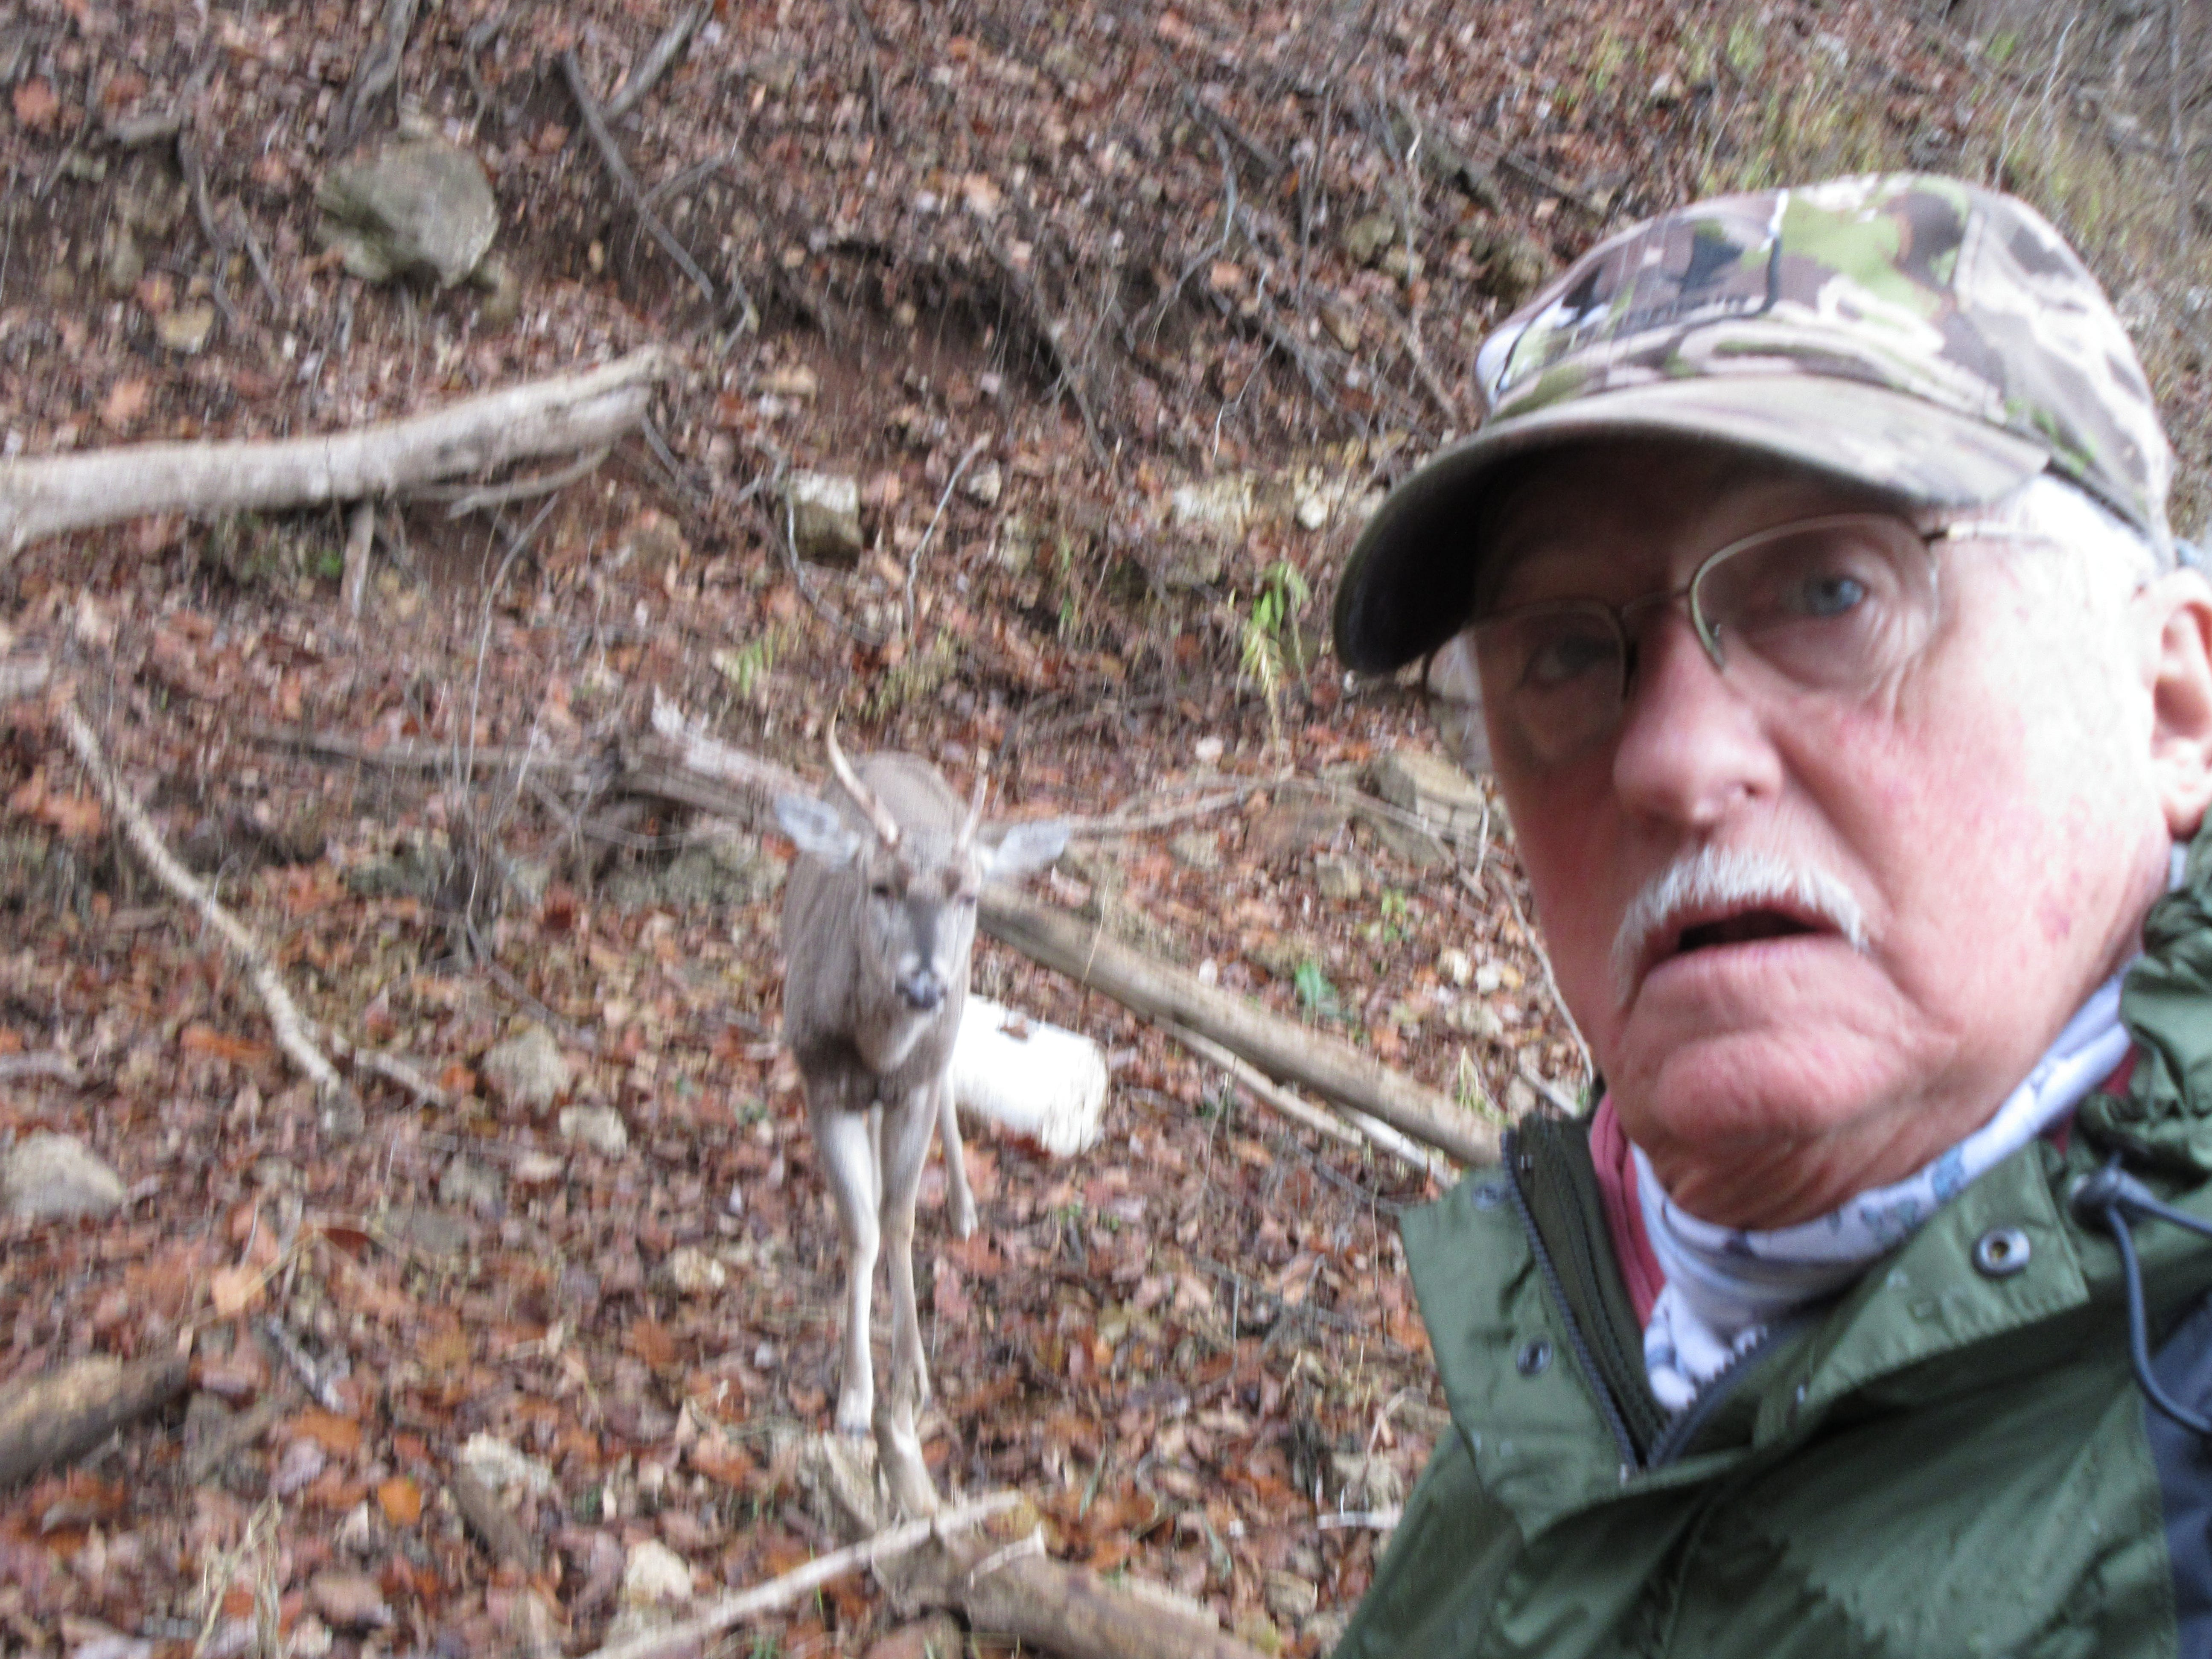 A small buck injured while scrambling down the hill allowed Larry Rottmann to approach.